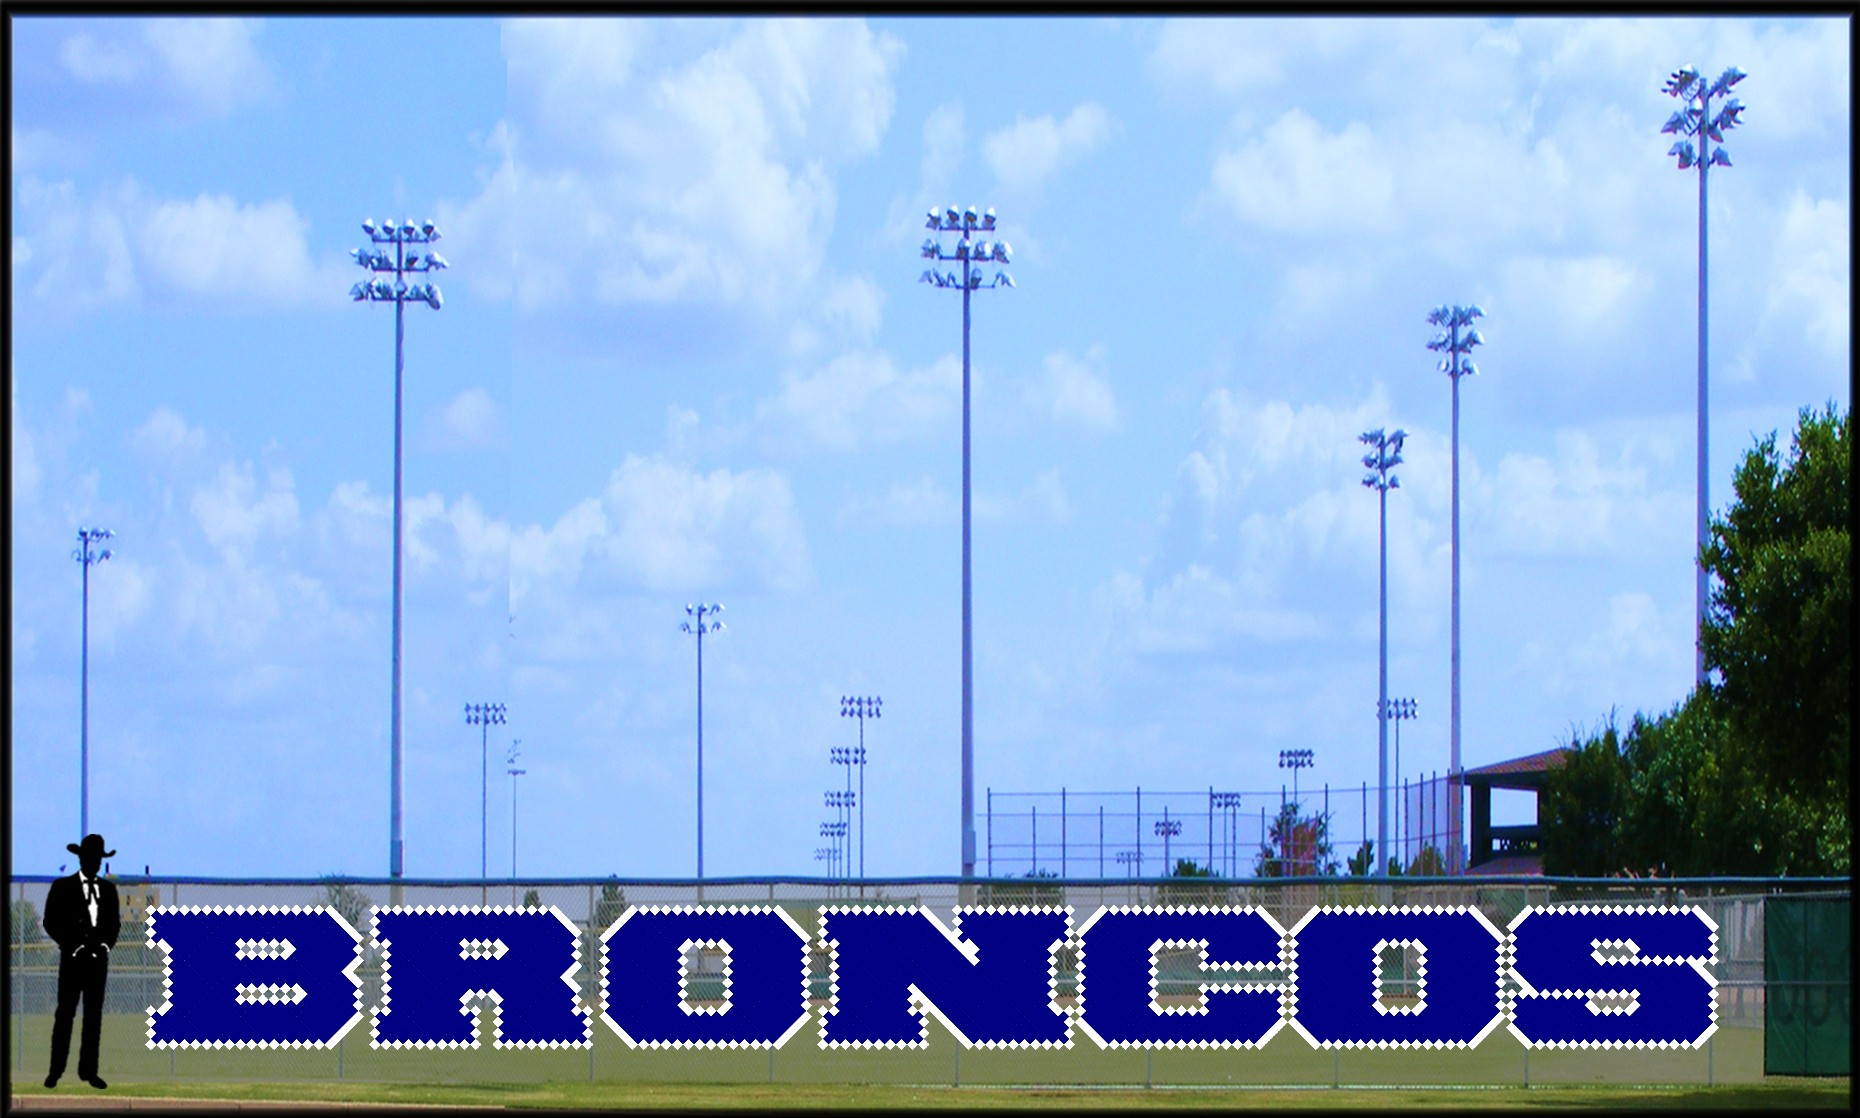 4' x 41' Bold Broncos Letters